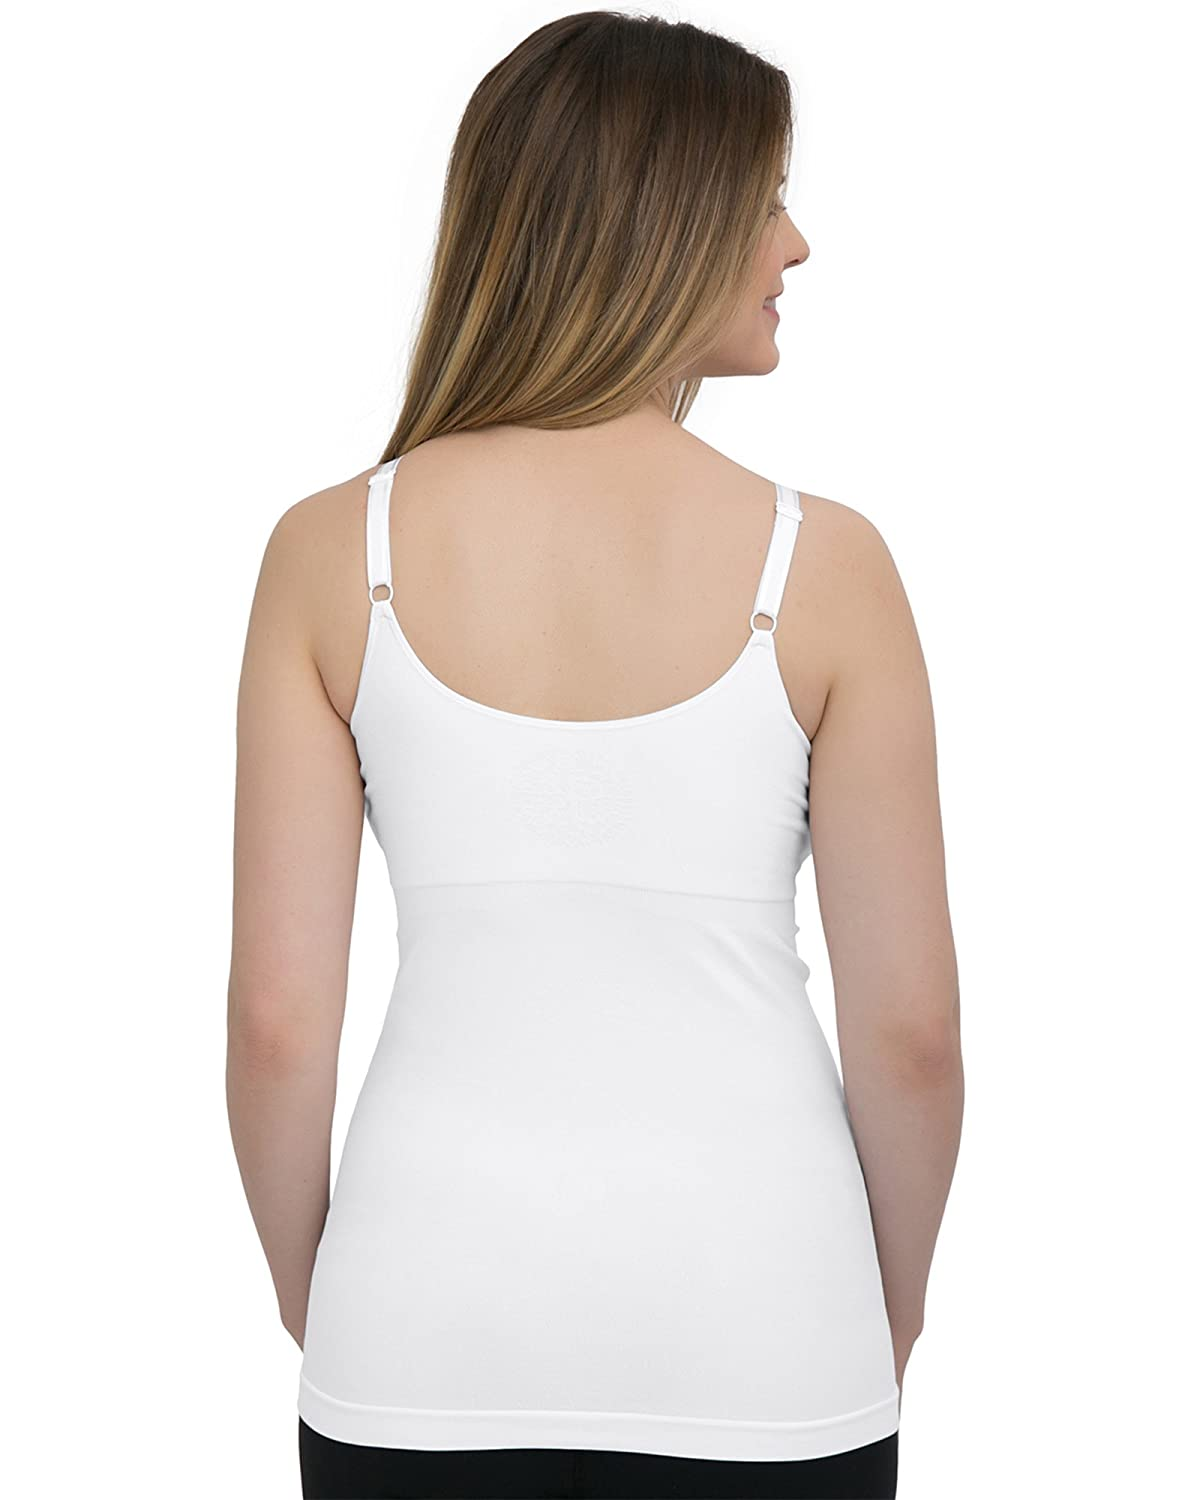 45694377a1145 ... Kindred Bravely Simply Sublime Maternity & Nursing Tank with Built-in  Bra ...